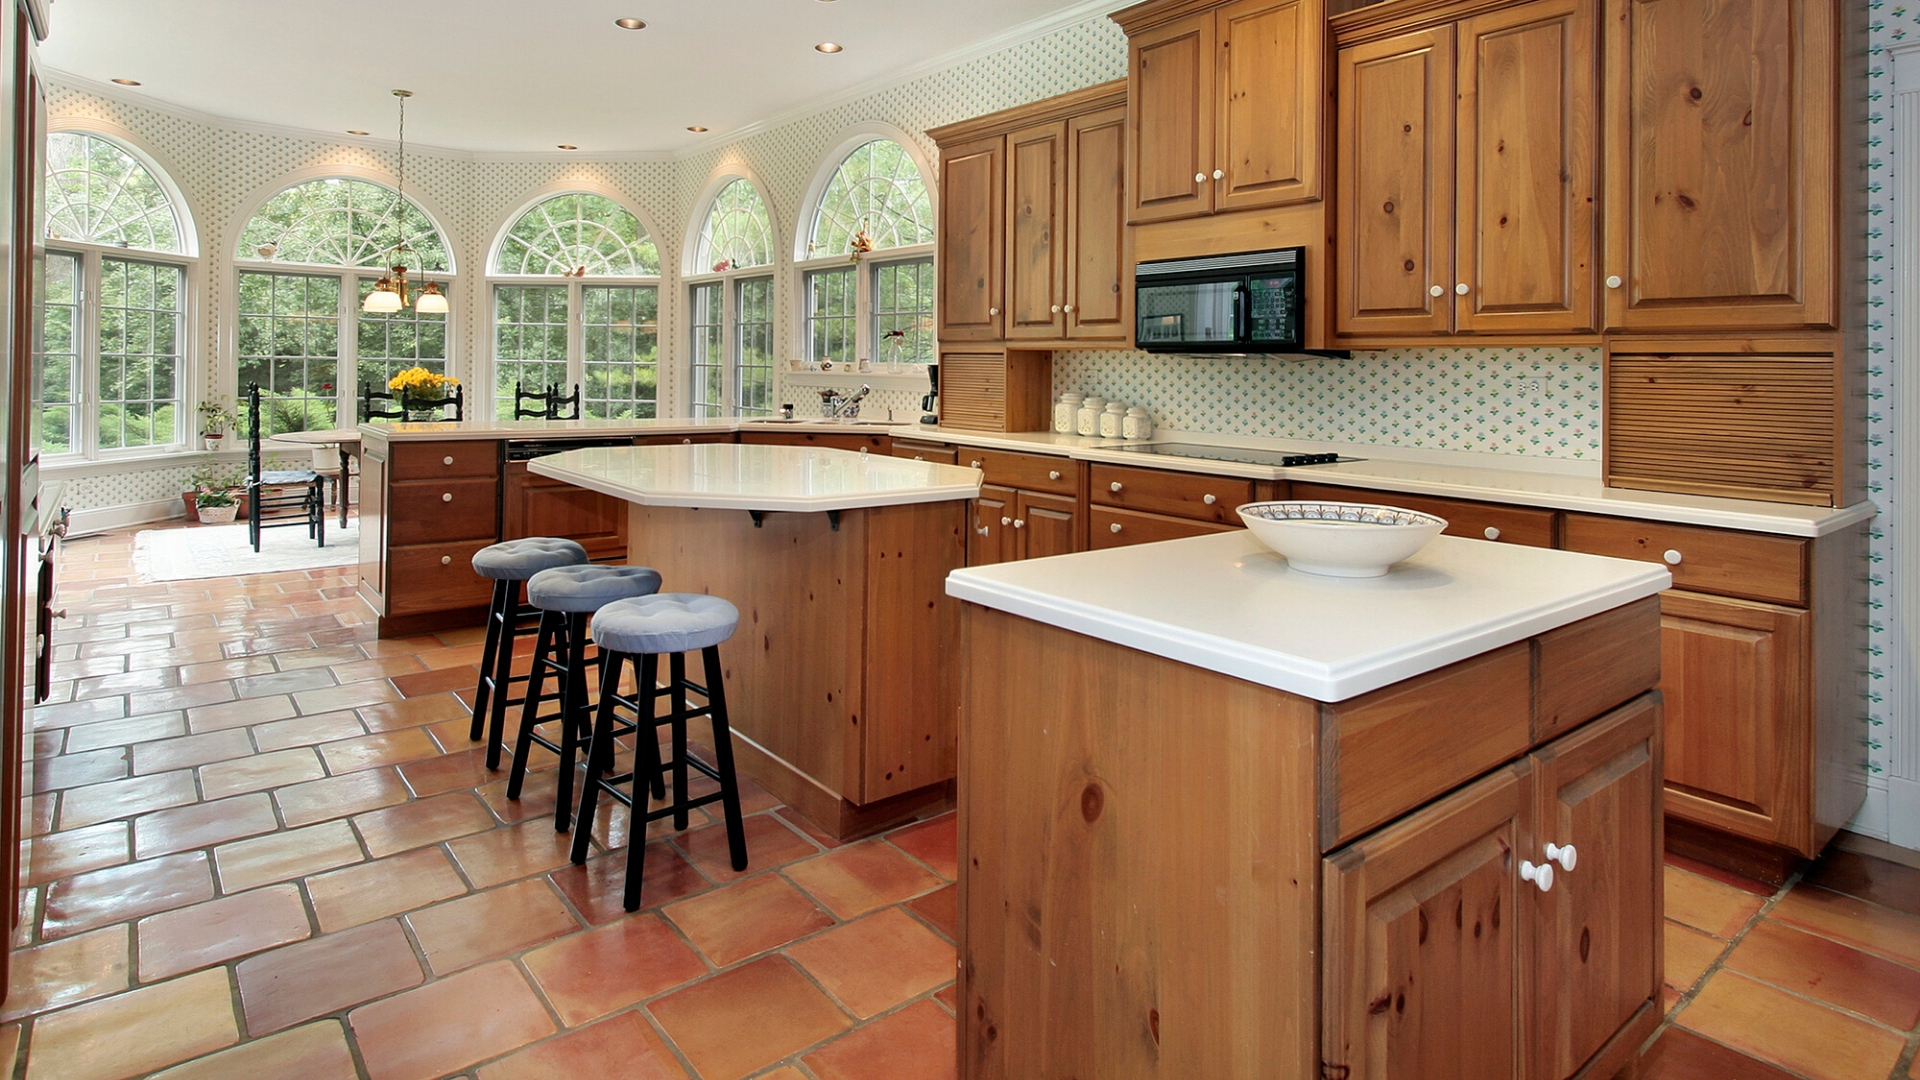 Spanish Style Design For Your St Louis Kitchen